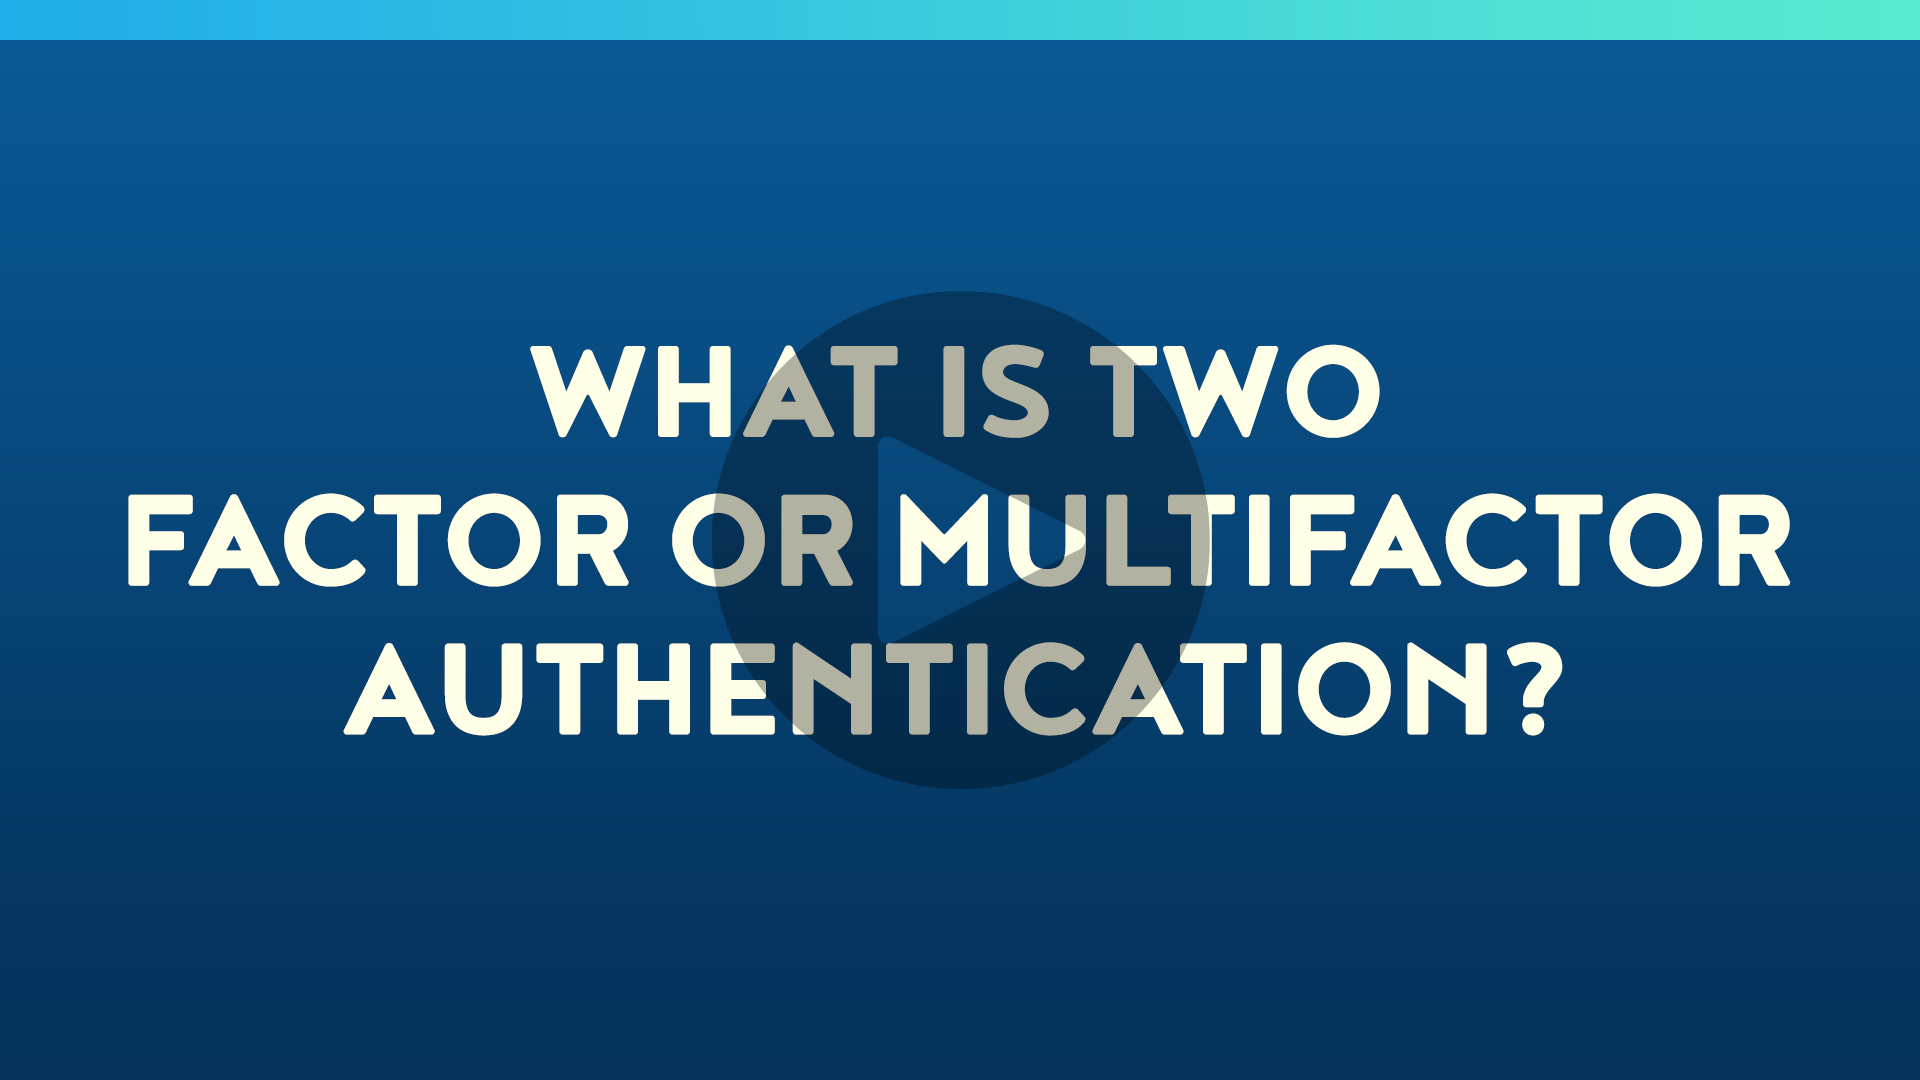 What is Two Factor or Multifactor Authentication?